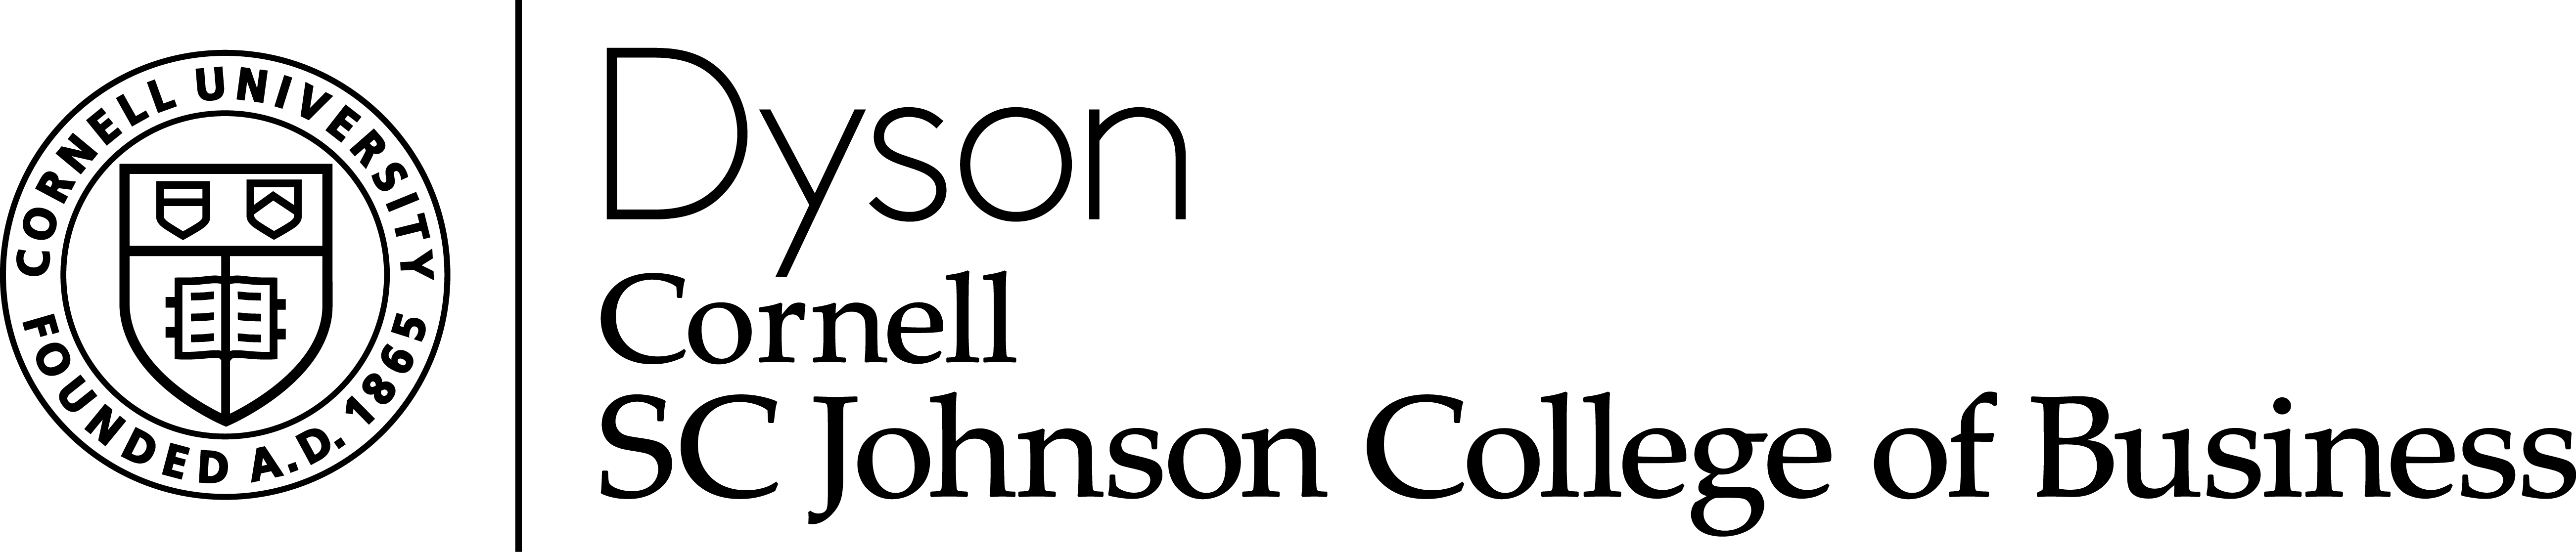 DYSON, Cornell SC Johnson College of Business